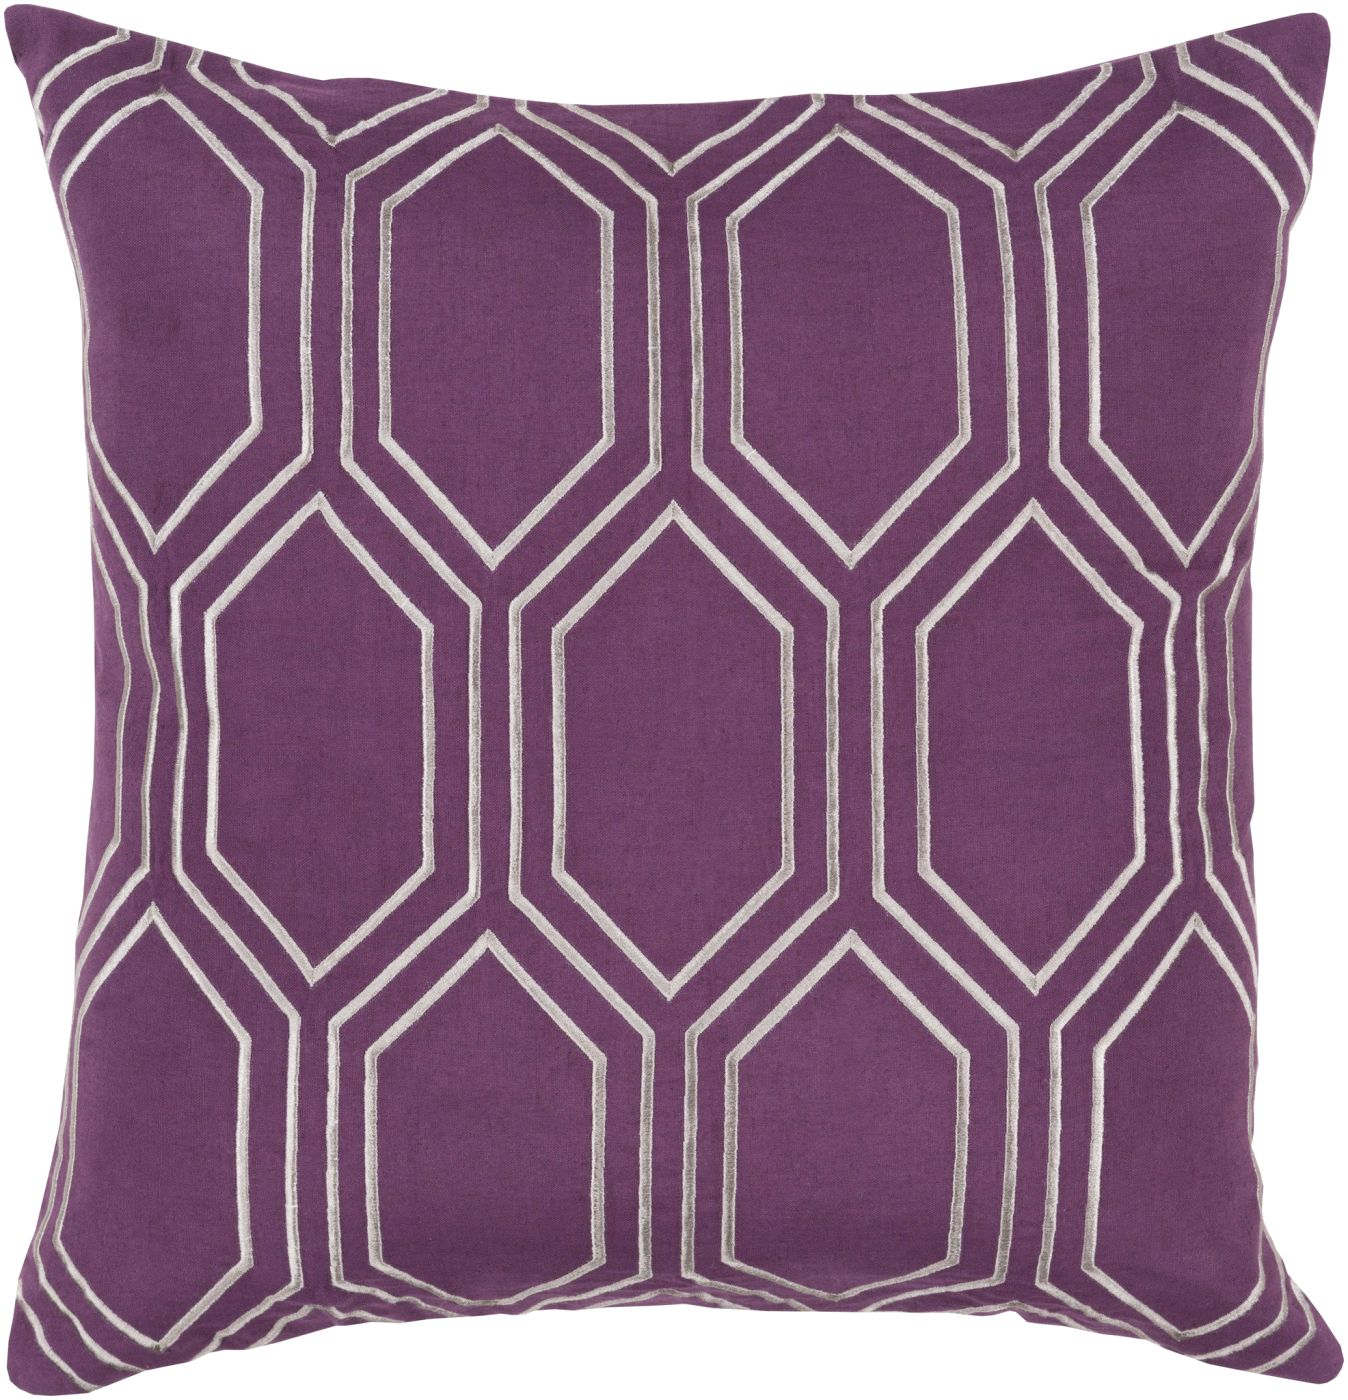 Purple And Gray Decorative Pillows : Surya Skyline Throw Pillow Purple, Gray BA006-2020D. Only $97.80 at Contemporary Furniture ...